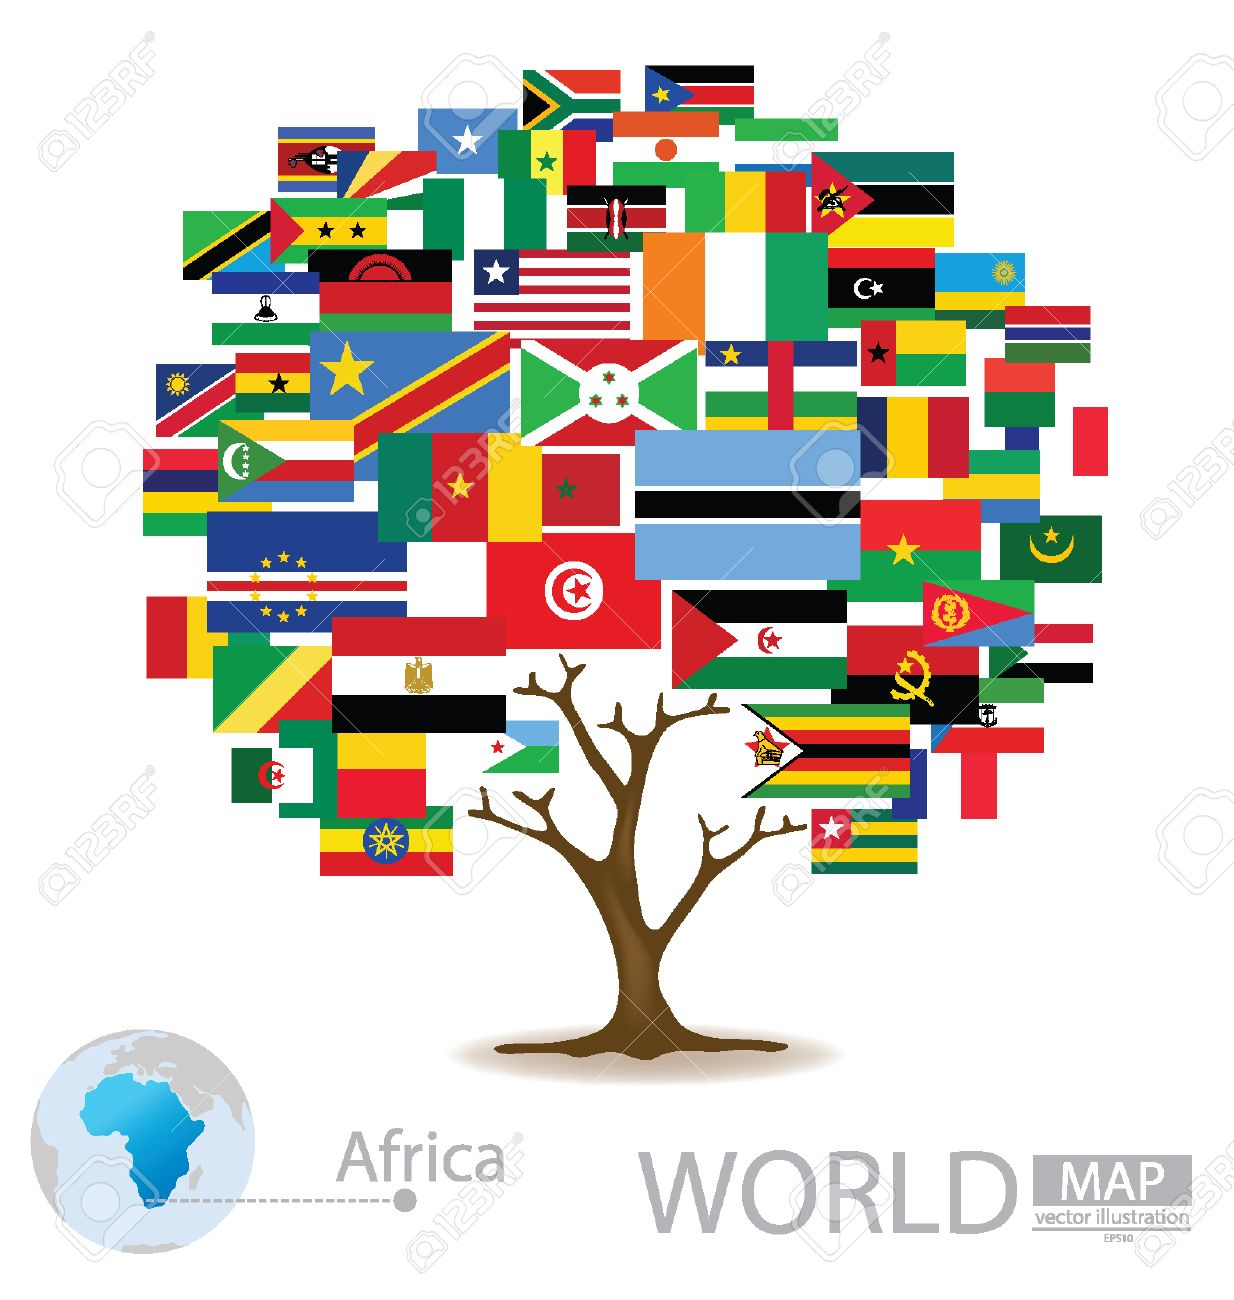 Flag World Map.Tree Design Countries In Africa Flag World Map Vector